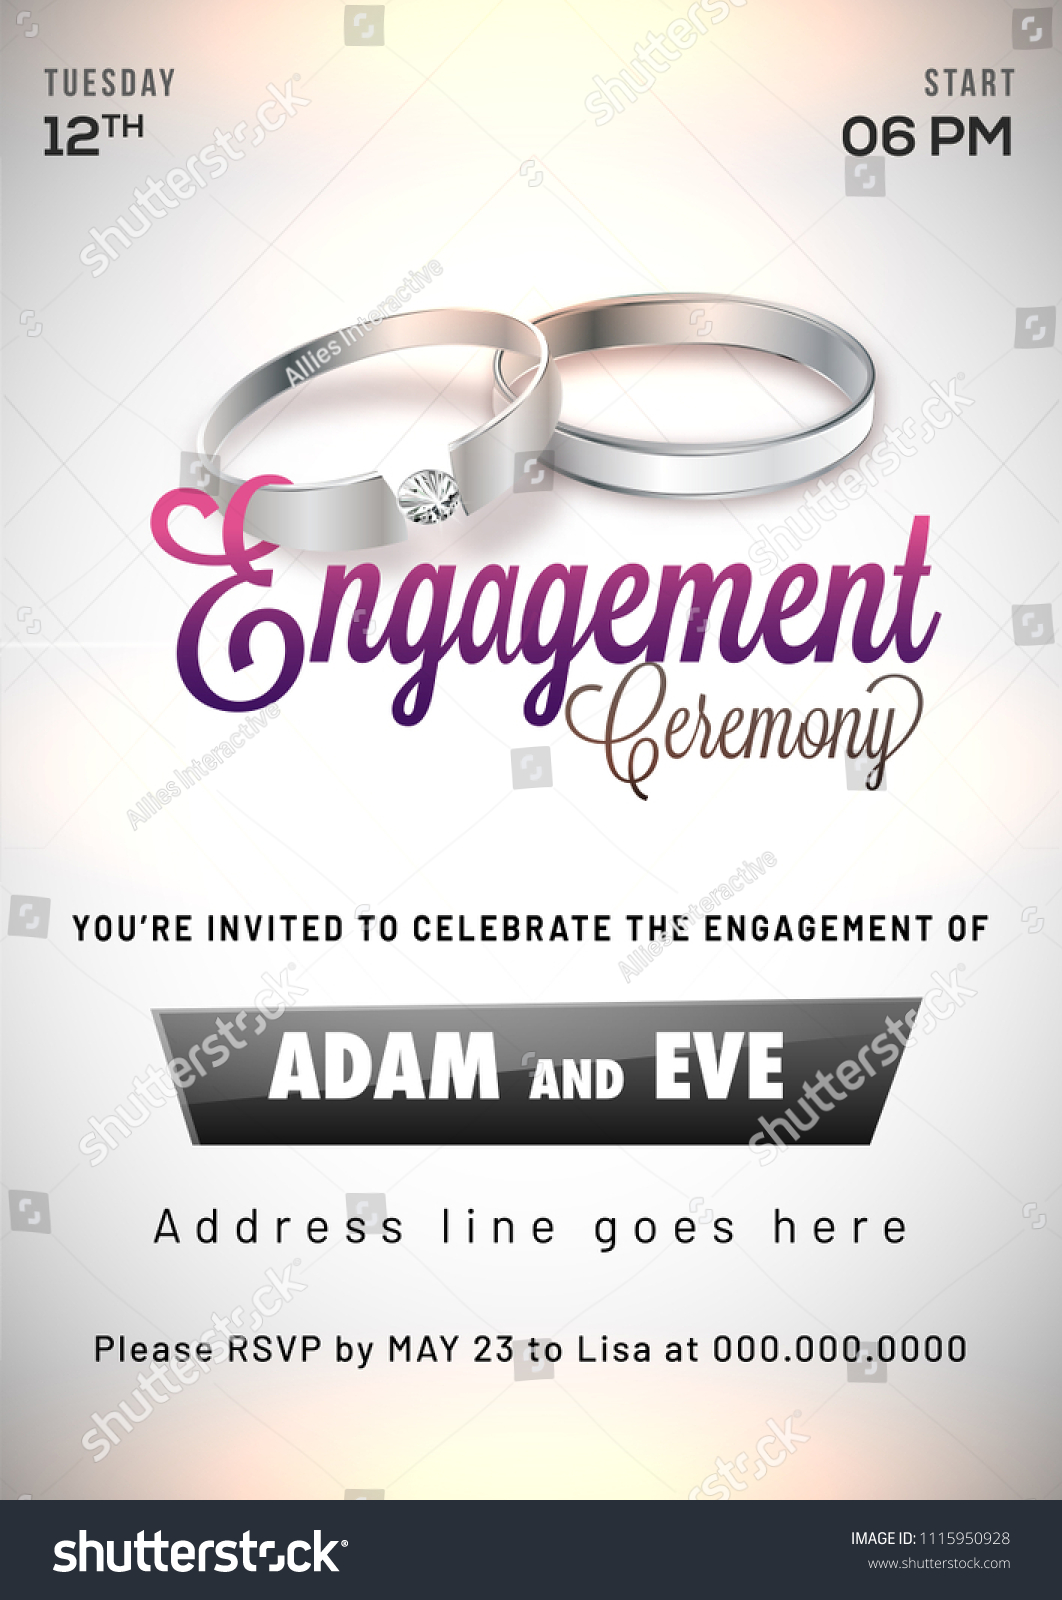 Engagement Invitation Card Design Stock Vector (Royalty Free) 1115950928